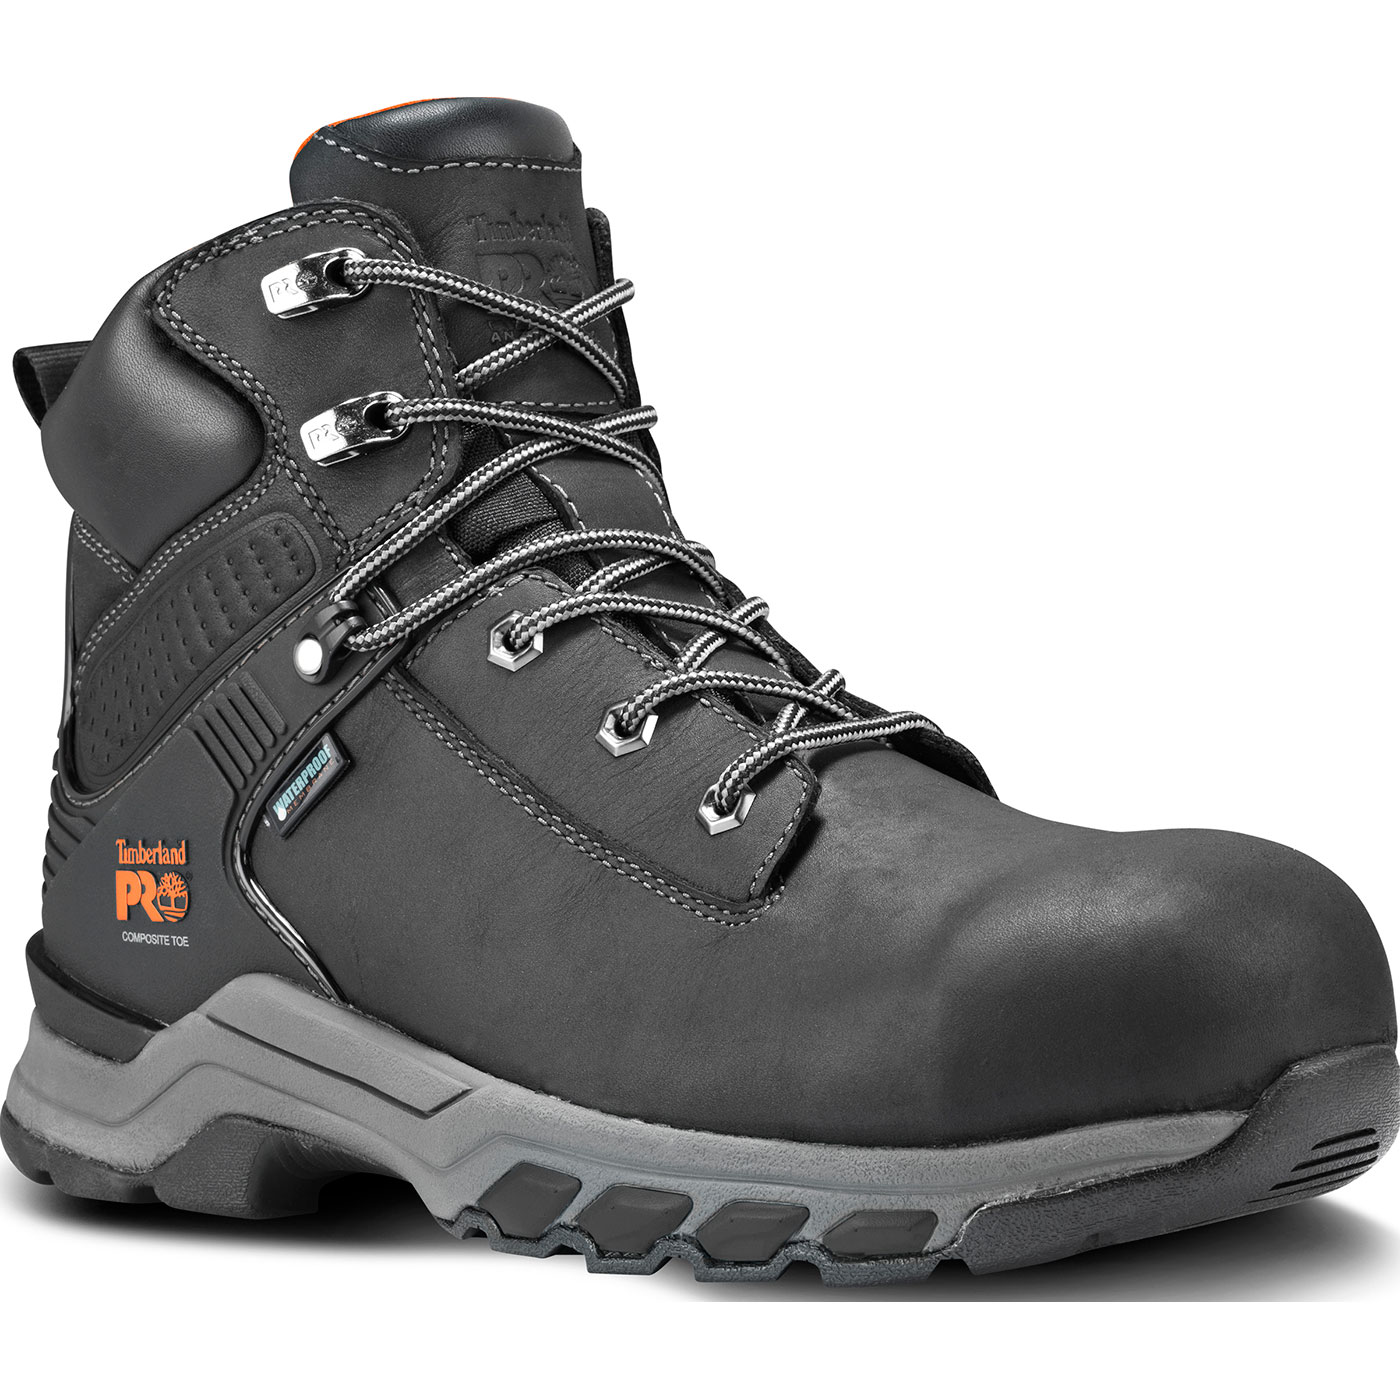 Men's Timberland 6 Inch Boots | Timberland Boots with Fur